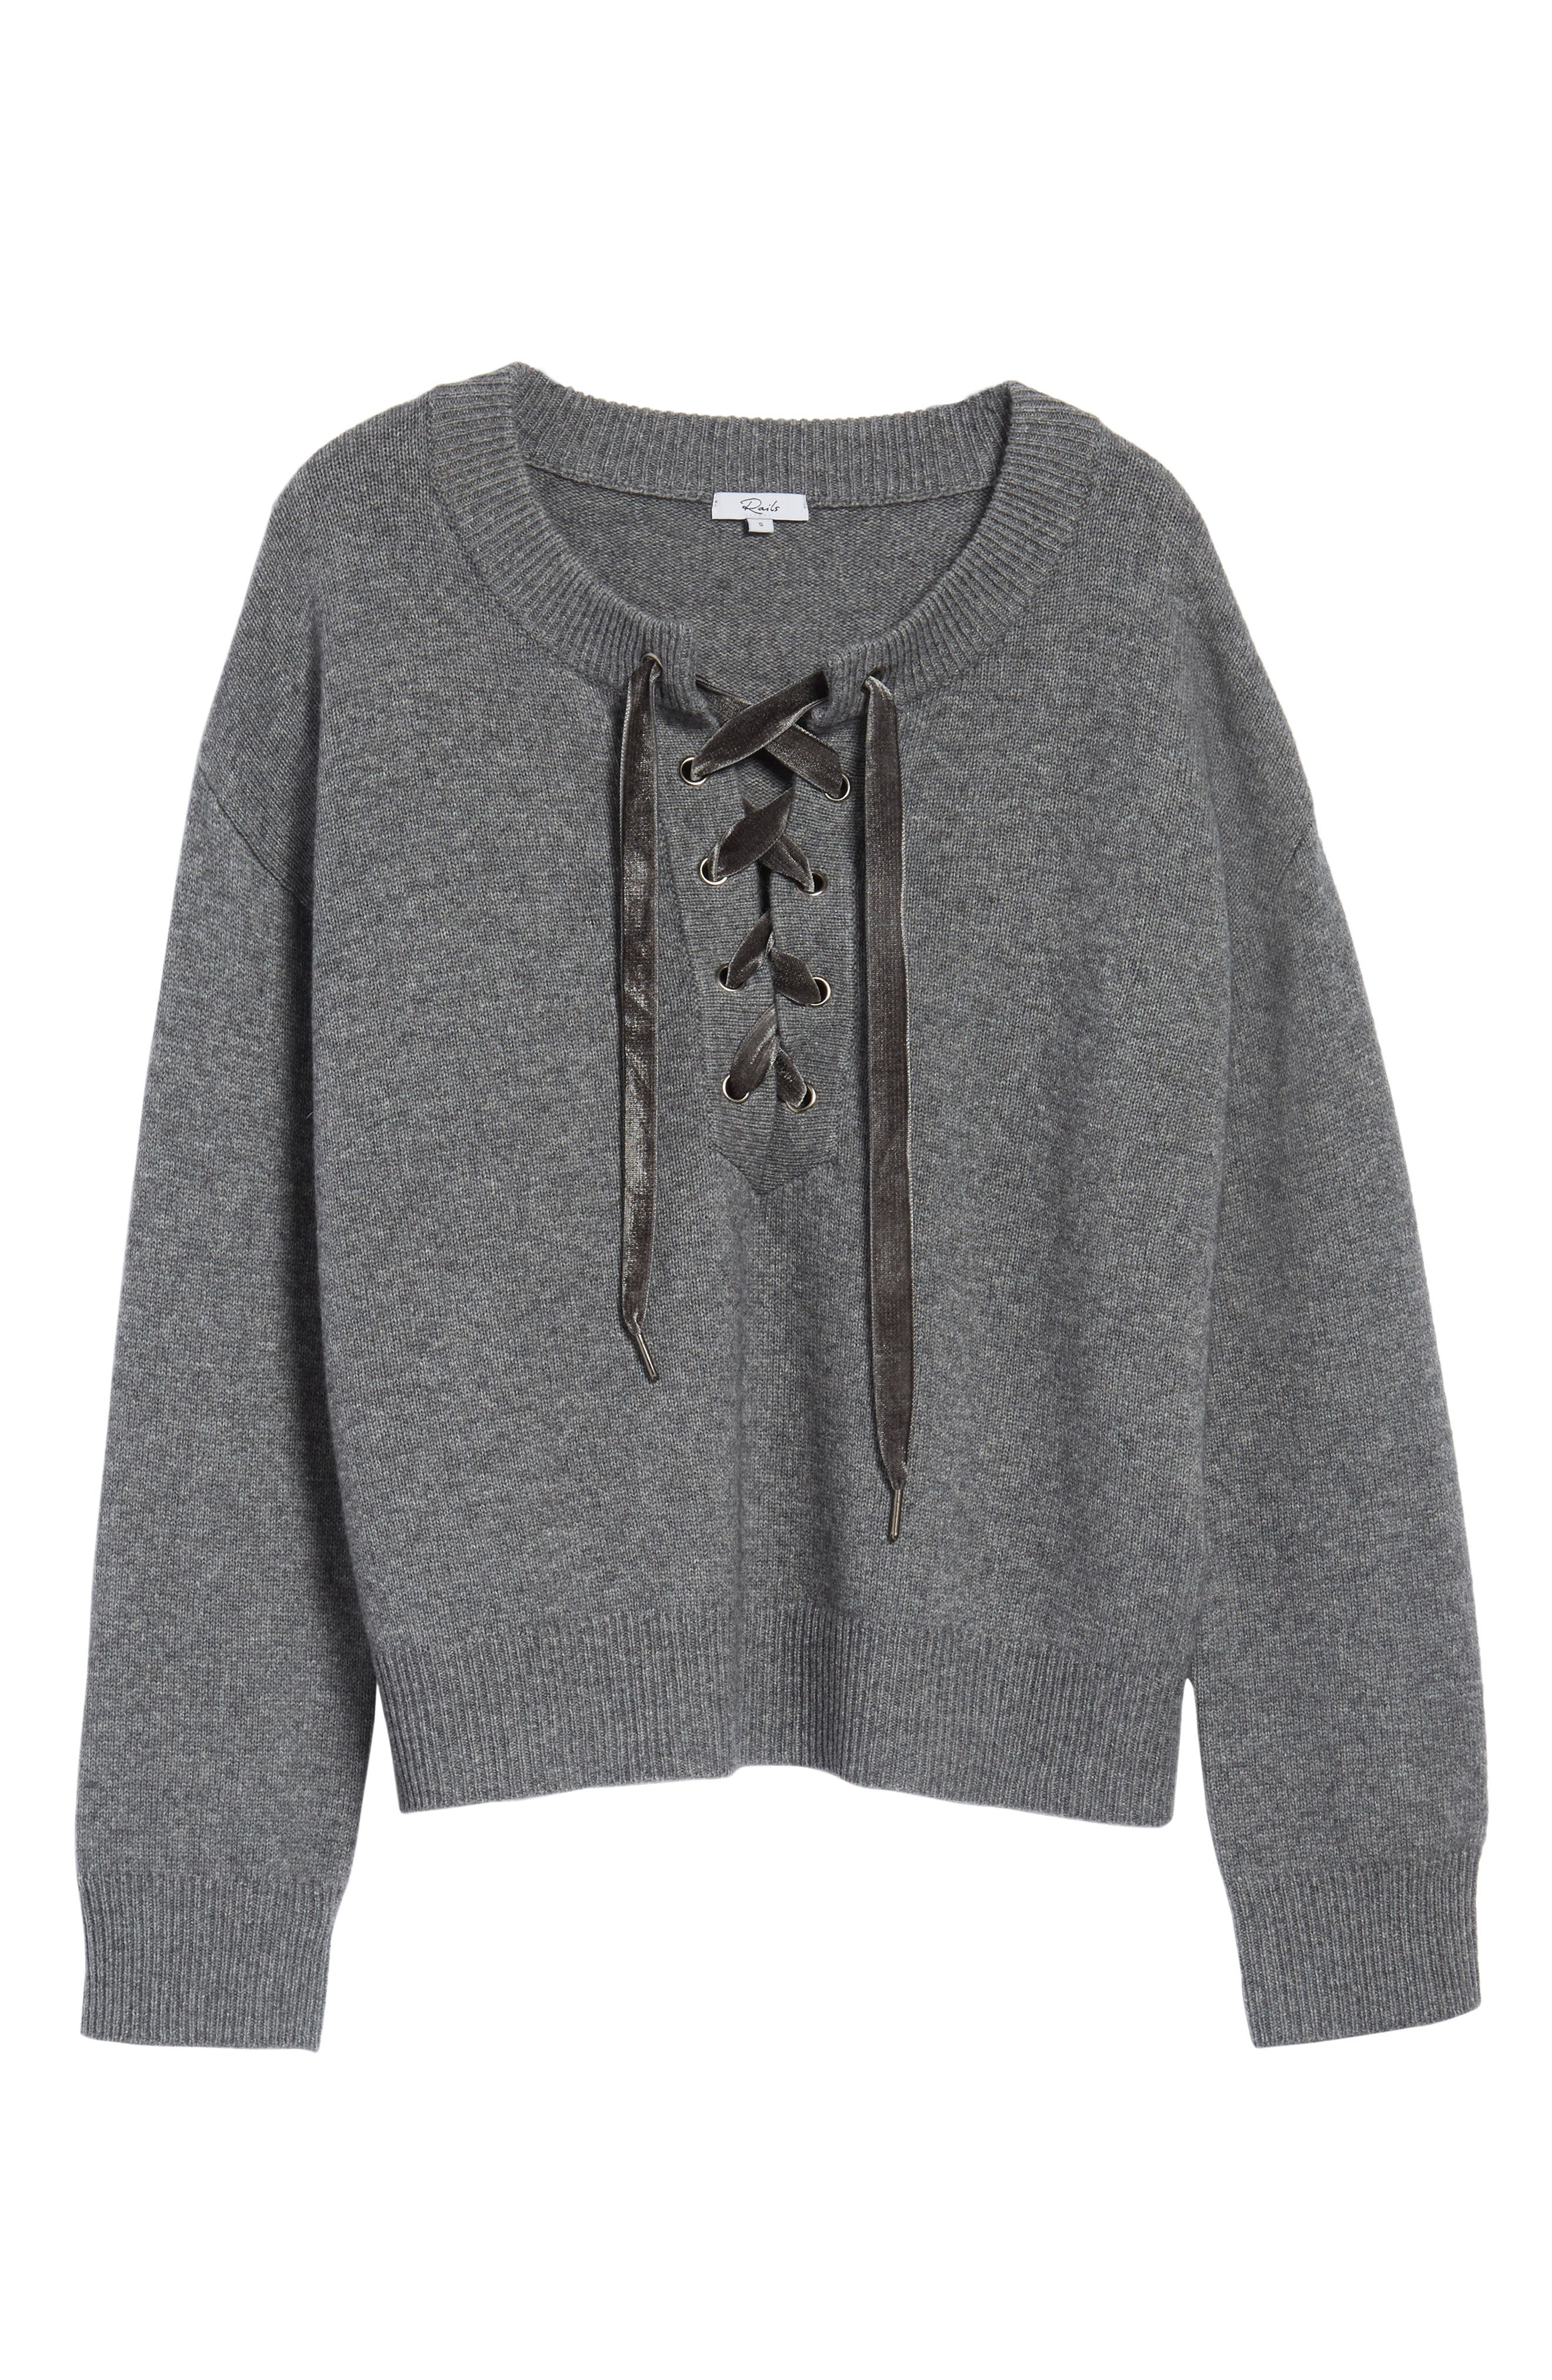 Olivia Lace-Up Sweater,                             Alternate thumbnail 7, color,                             ASH